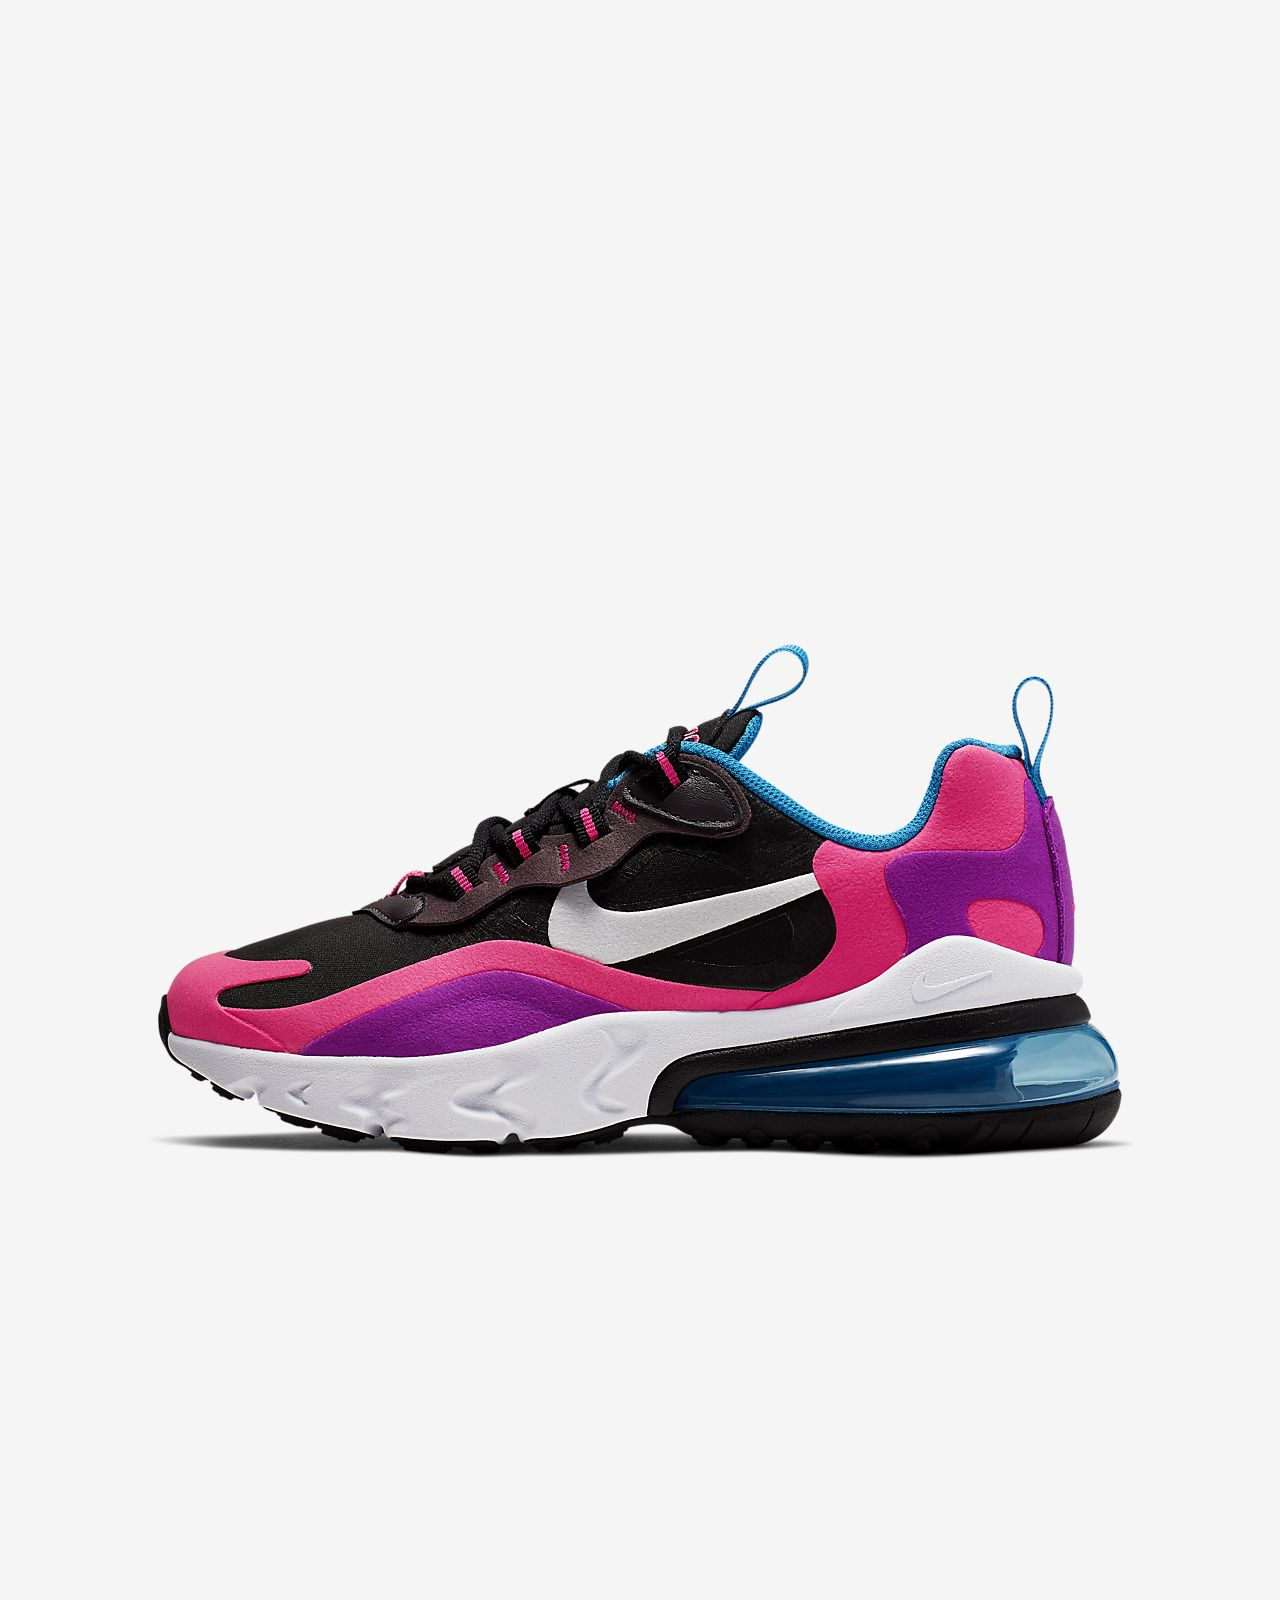 air max 270 react rose